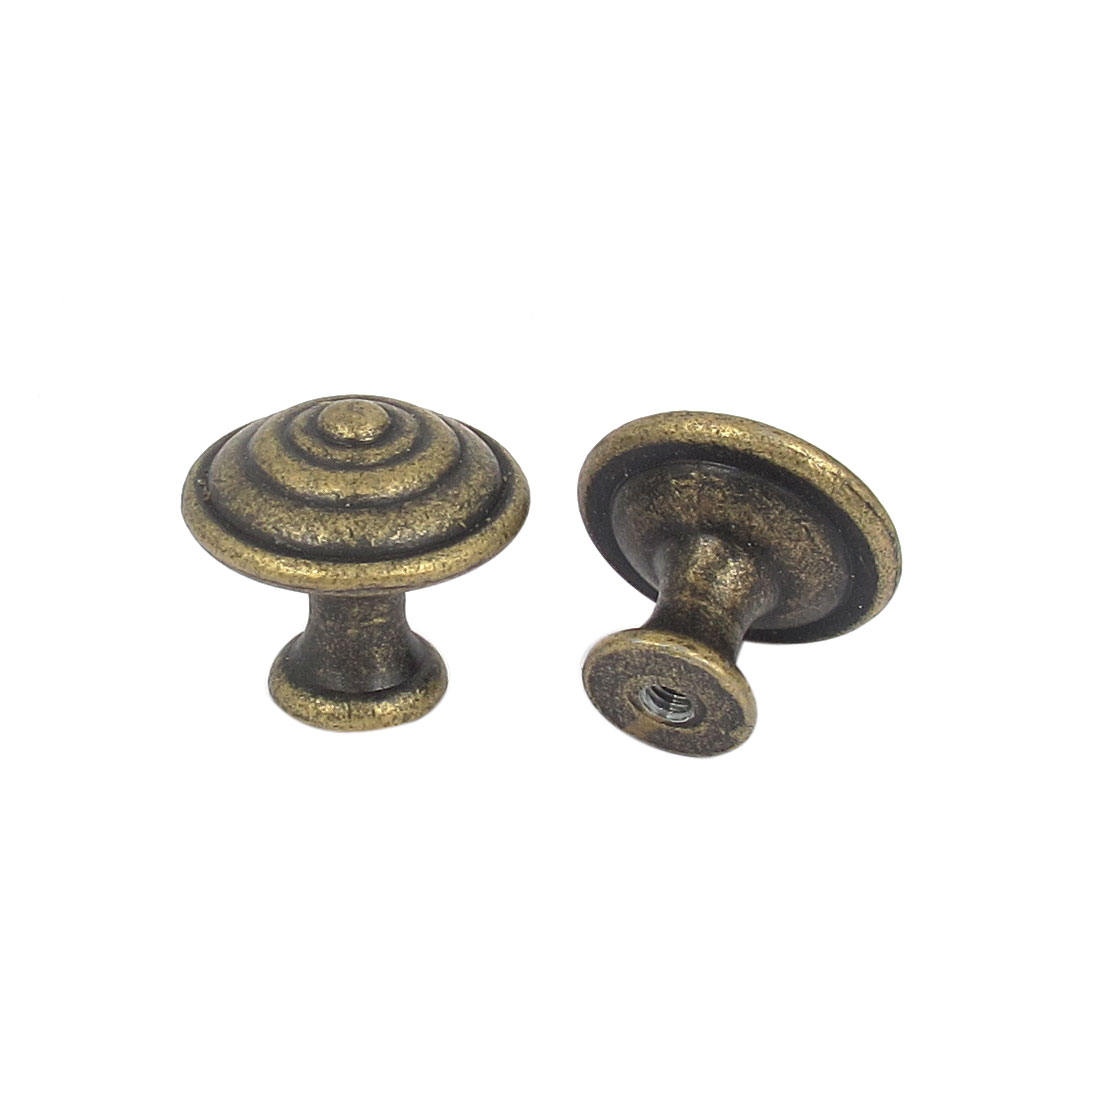 Cabinet Drawer Door Metal Mushroom Shaped Single Hole Pull Handles Bronze Tone 2Pcs